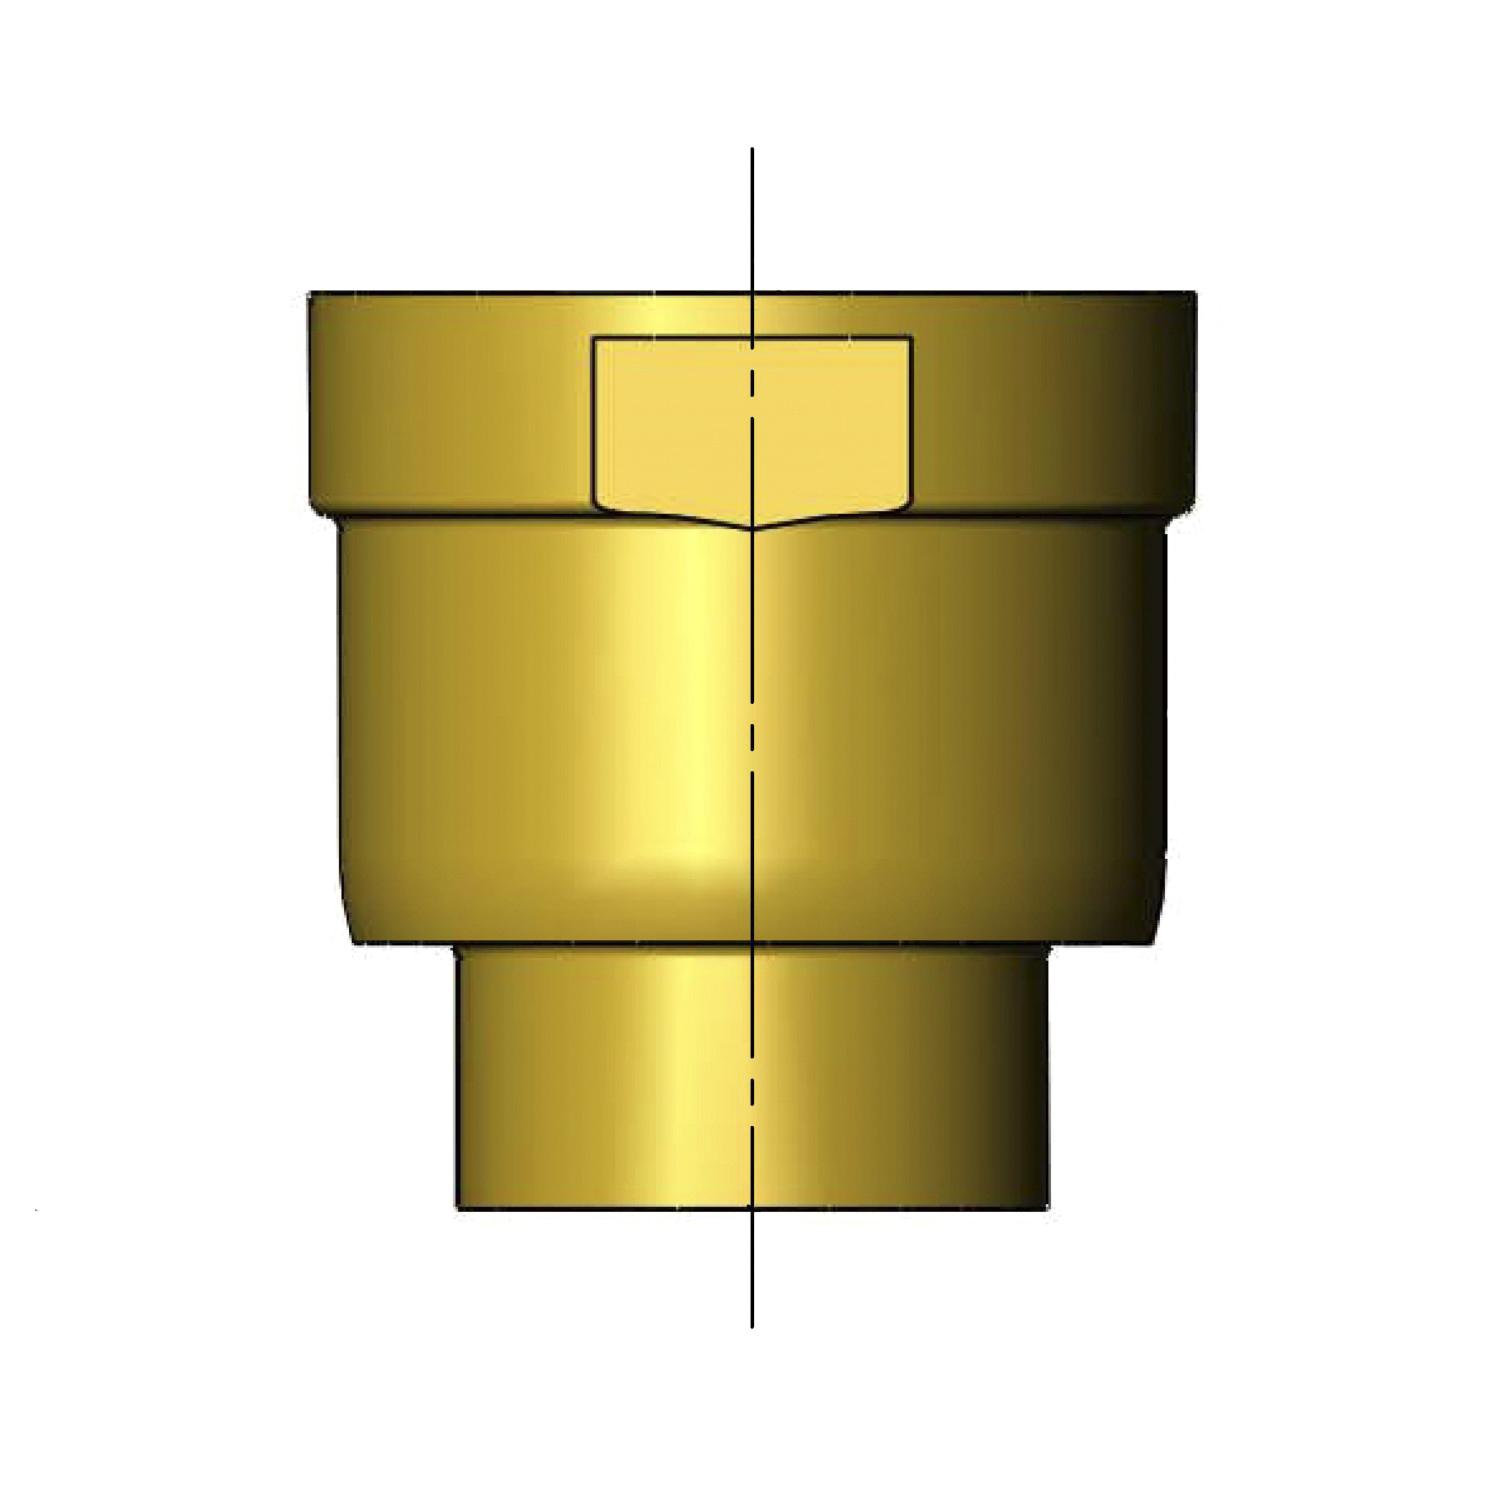 T&S BRASS OUTLET NIPPLE